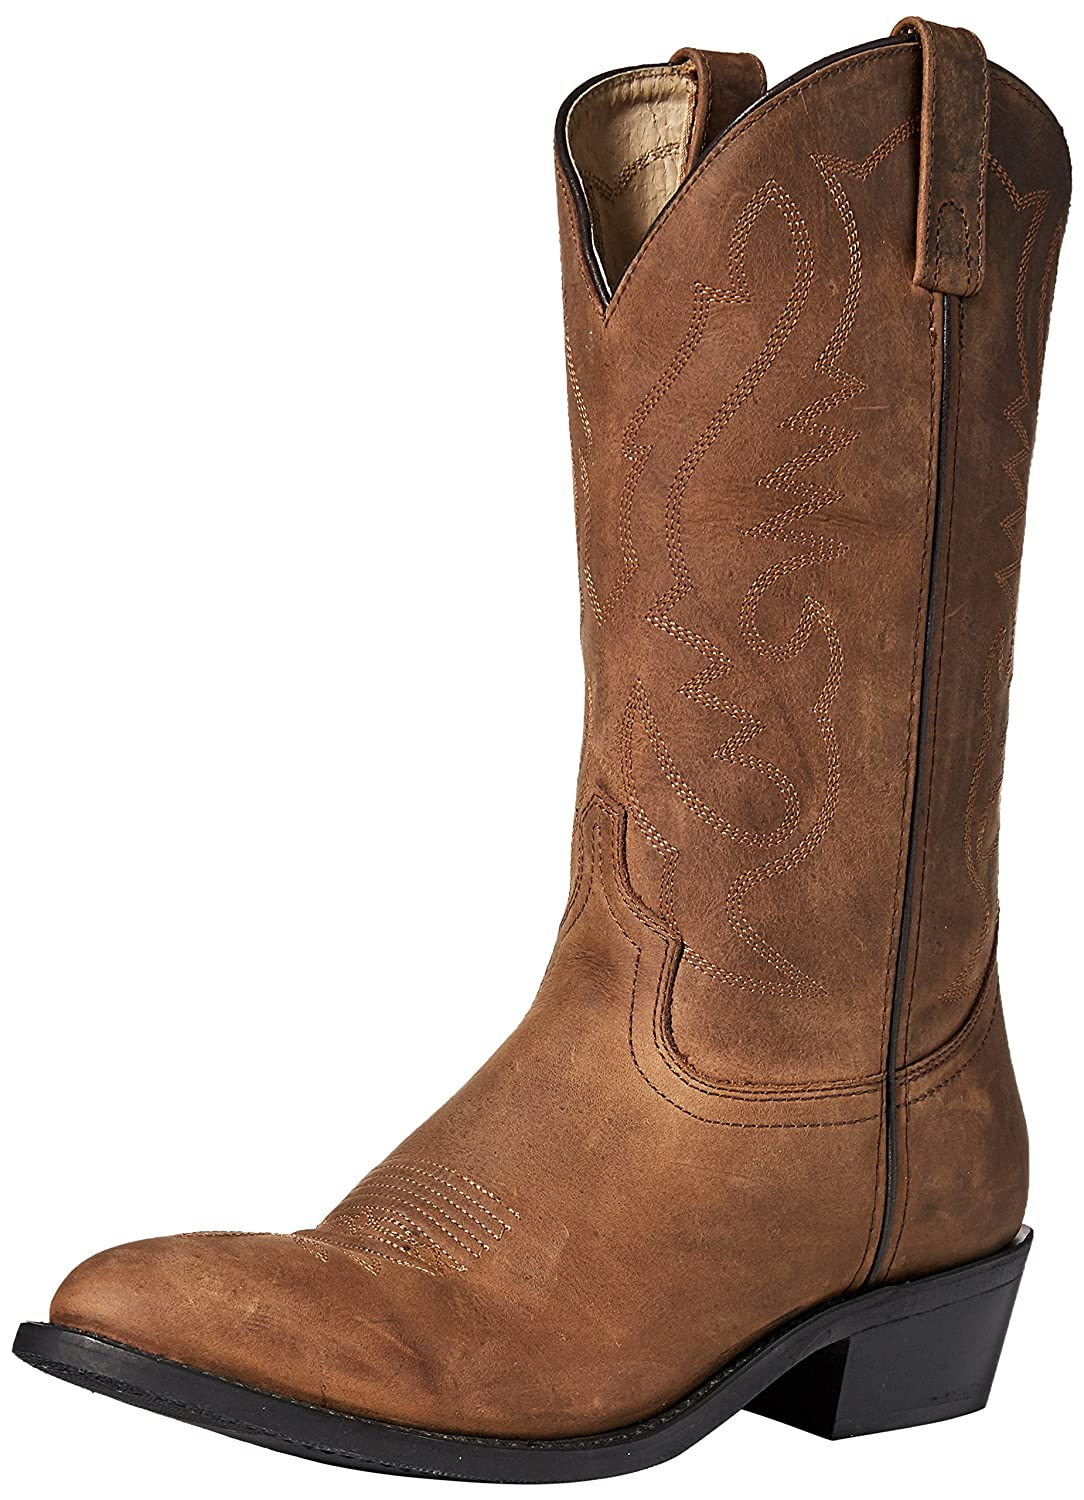 Smoky Mountain Boots Men's Denver Leather Western Boot 4034